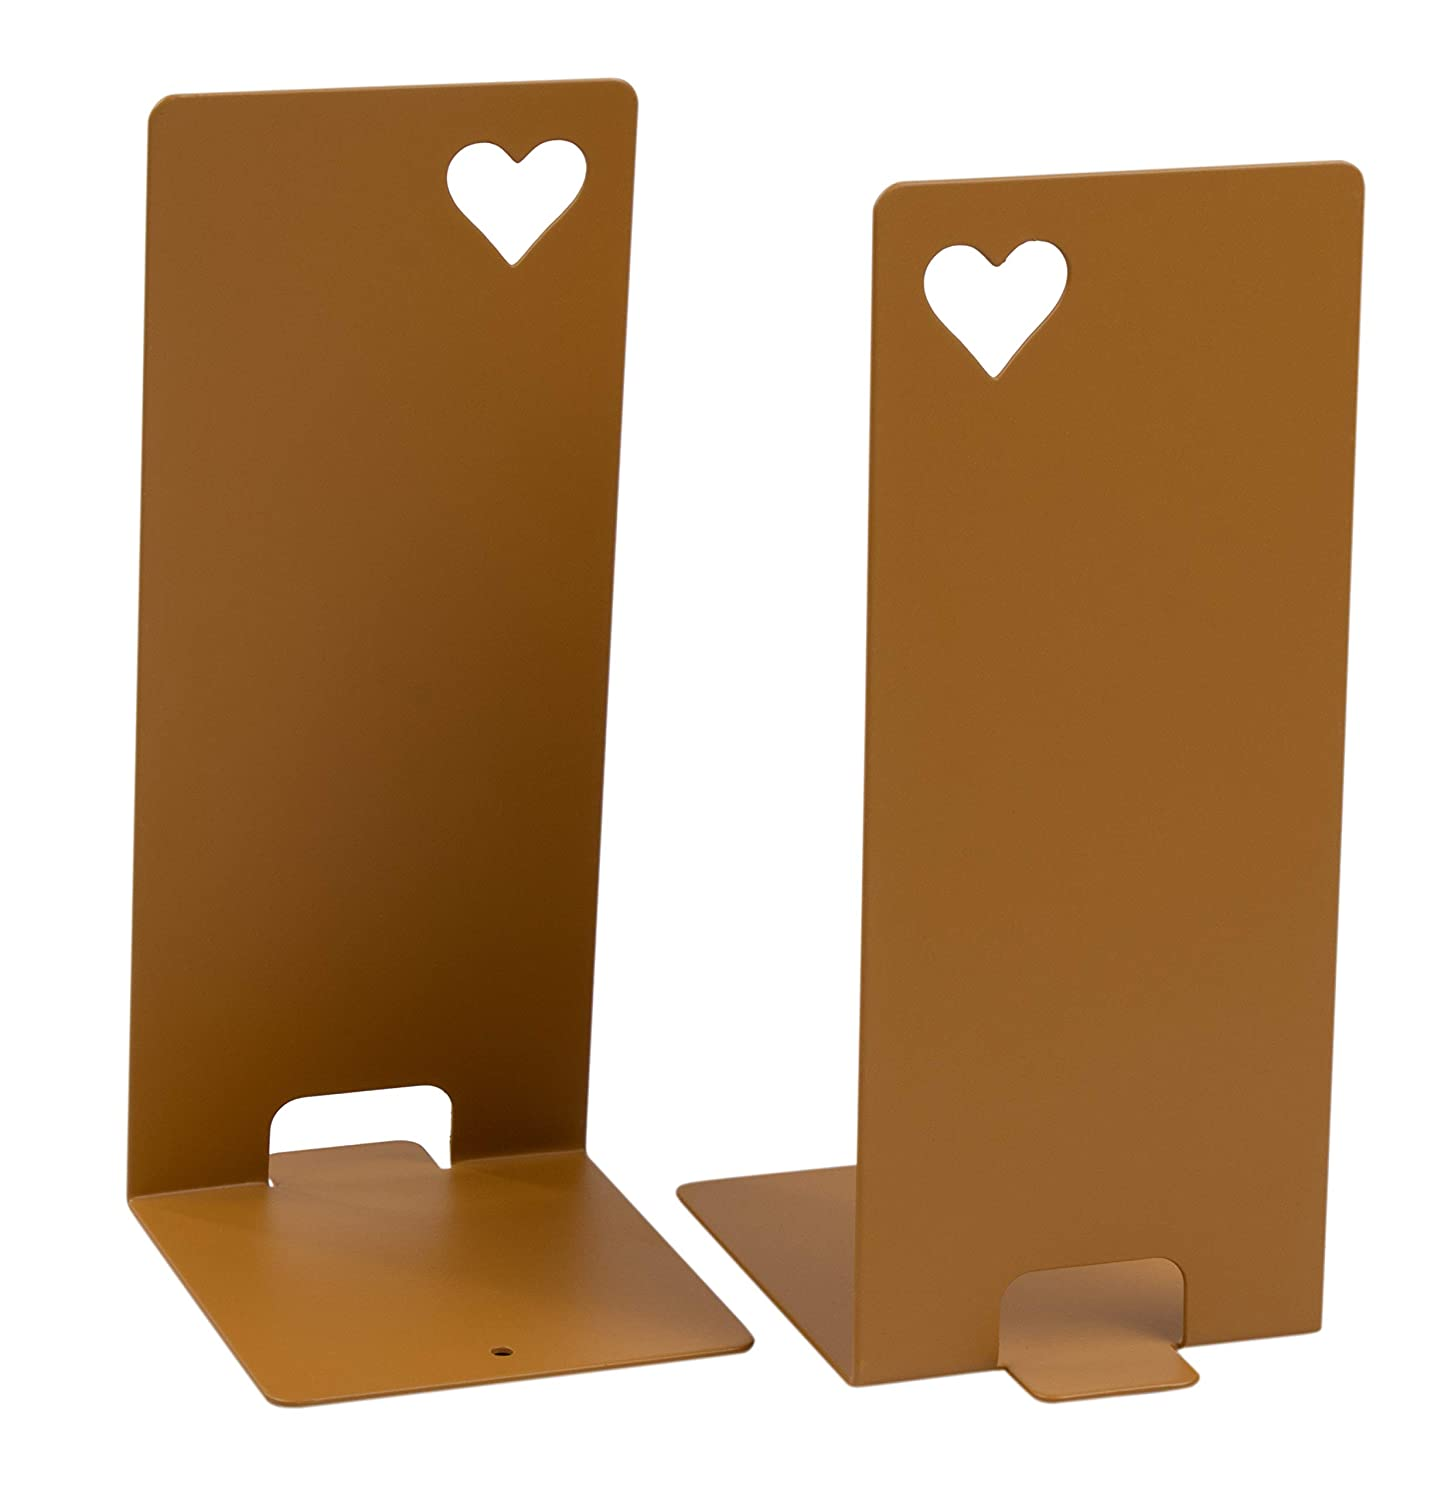 1-Pair Antique Gold Bookends - Non-Skid Metal Book Holder with Heart Cutout for Shelf, Kids Room, Office Desk, Home Decor, 4.2 x 3.7 x 7.9 Inches Juvale